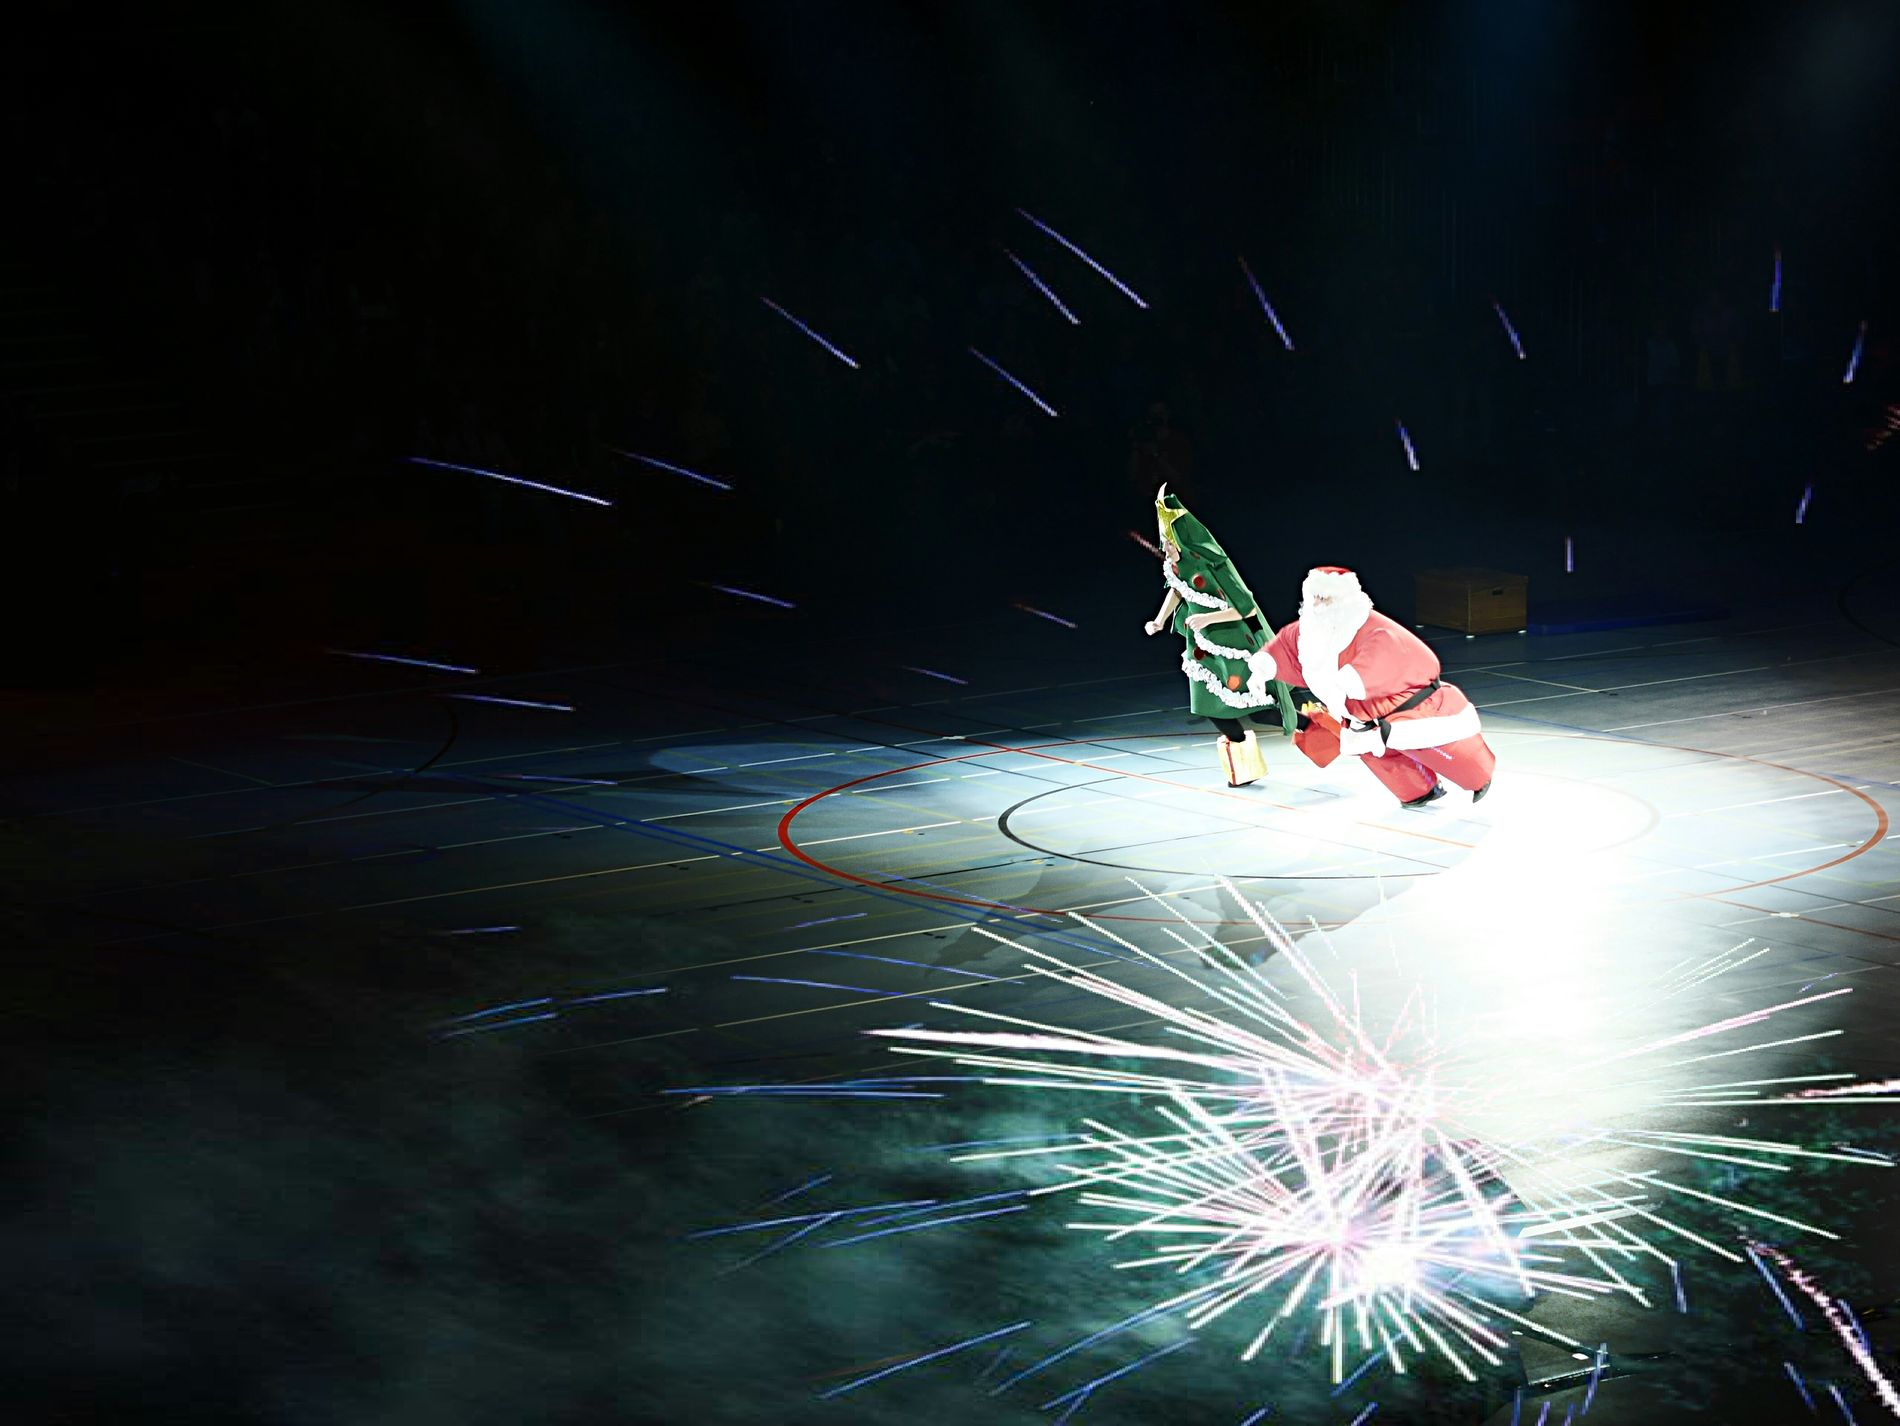 Moonwalk Santa - MAinLoveWithLife watching Santa Claus doing Weird Stuff in Beautiful Lighting #GX7